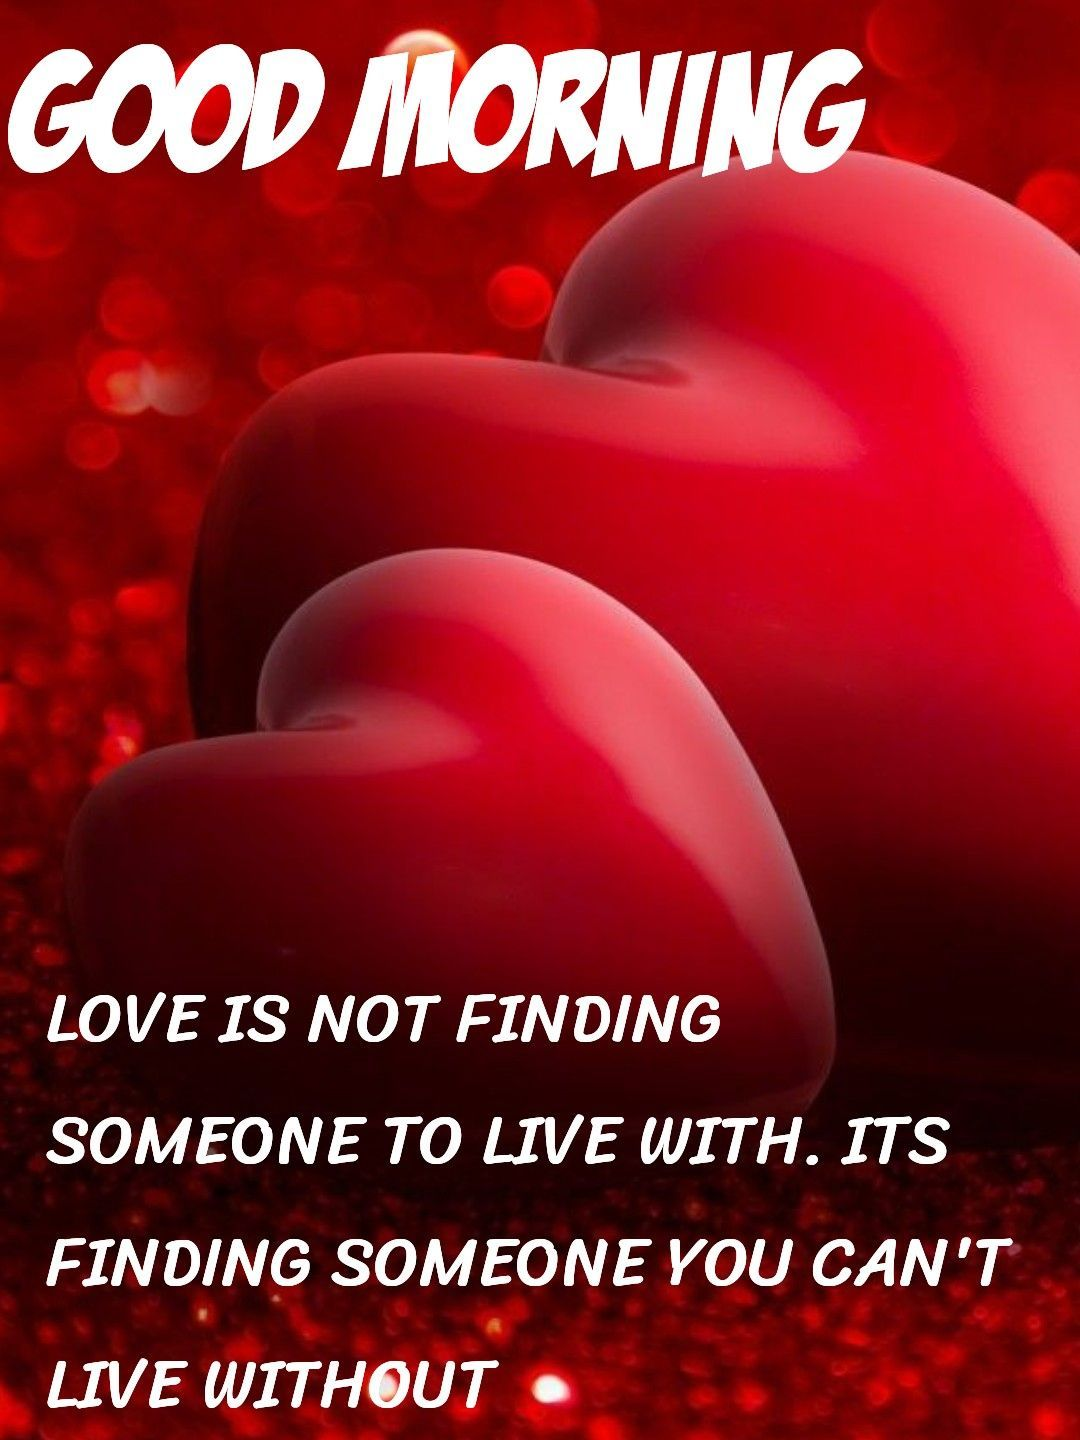 Good Morning Quote About Love Pictures, Photos, and Images